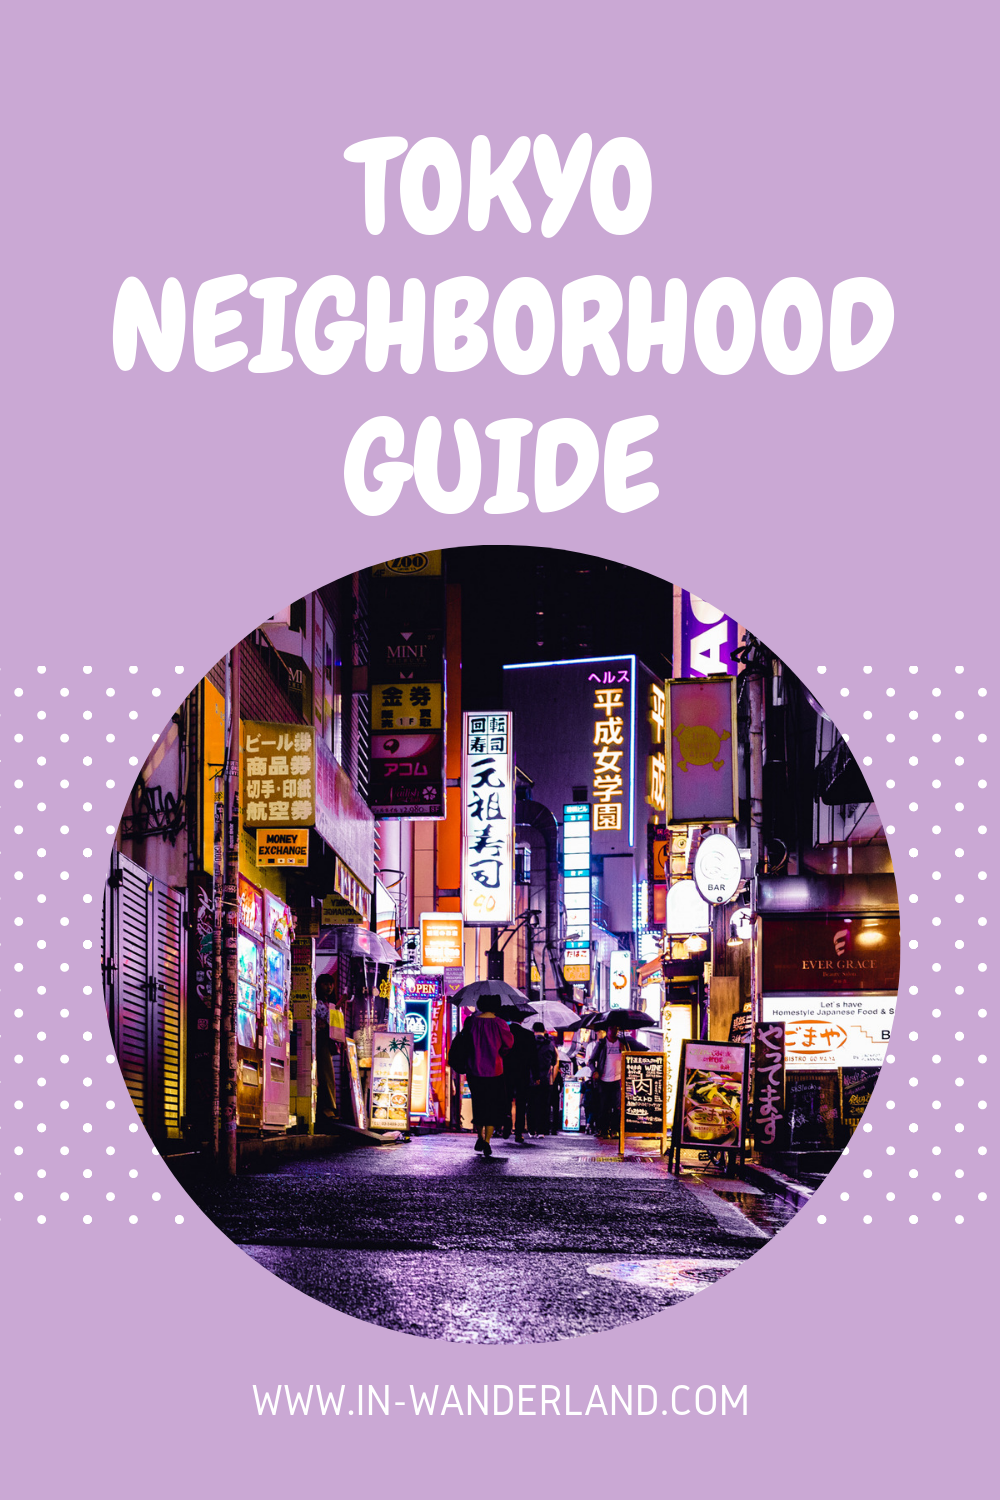 A guide to Every Neighborhood on Tokyo's Yamanote Loop